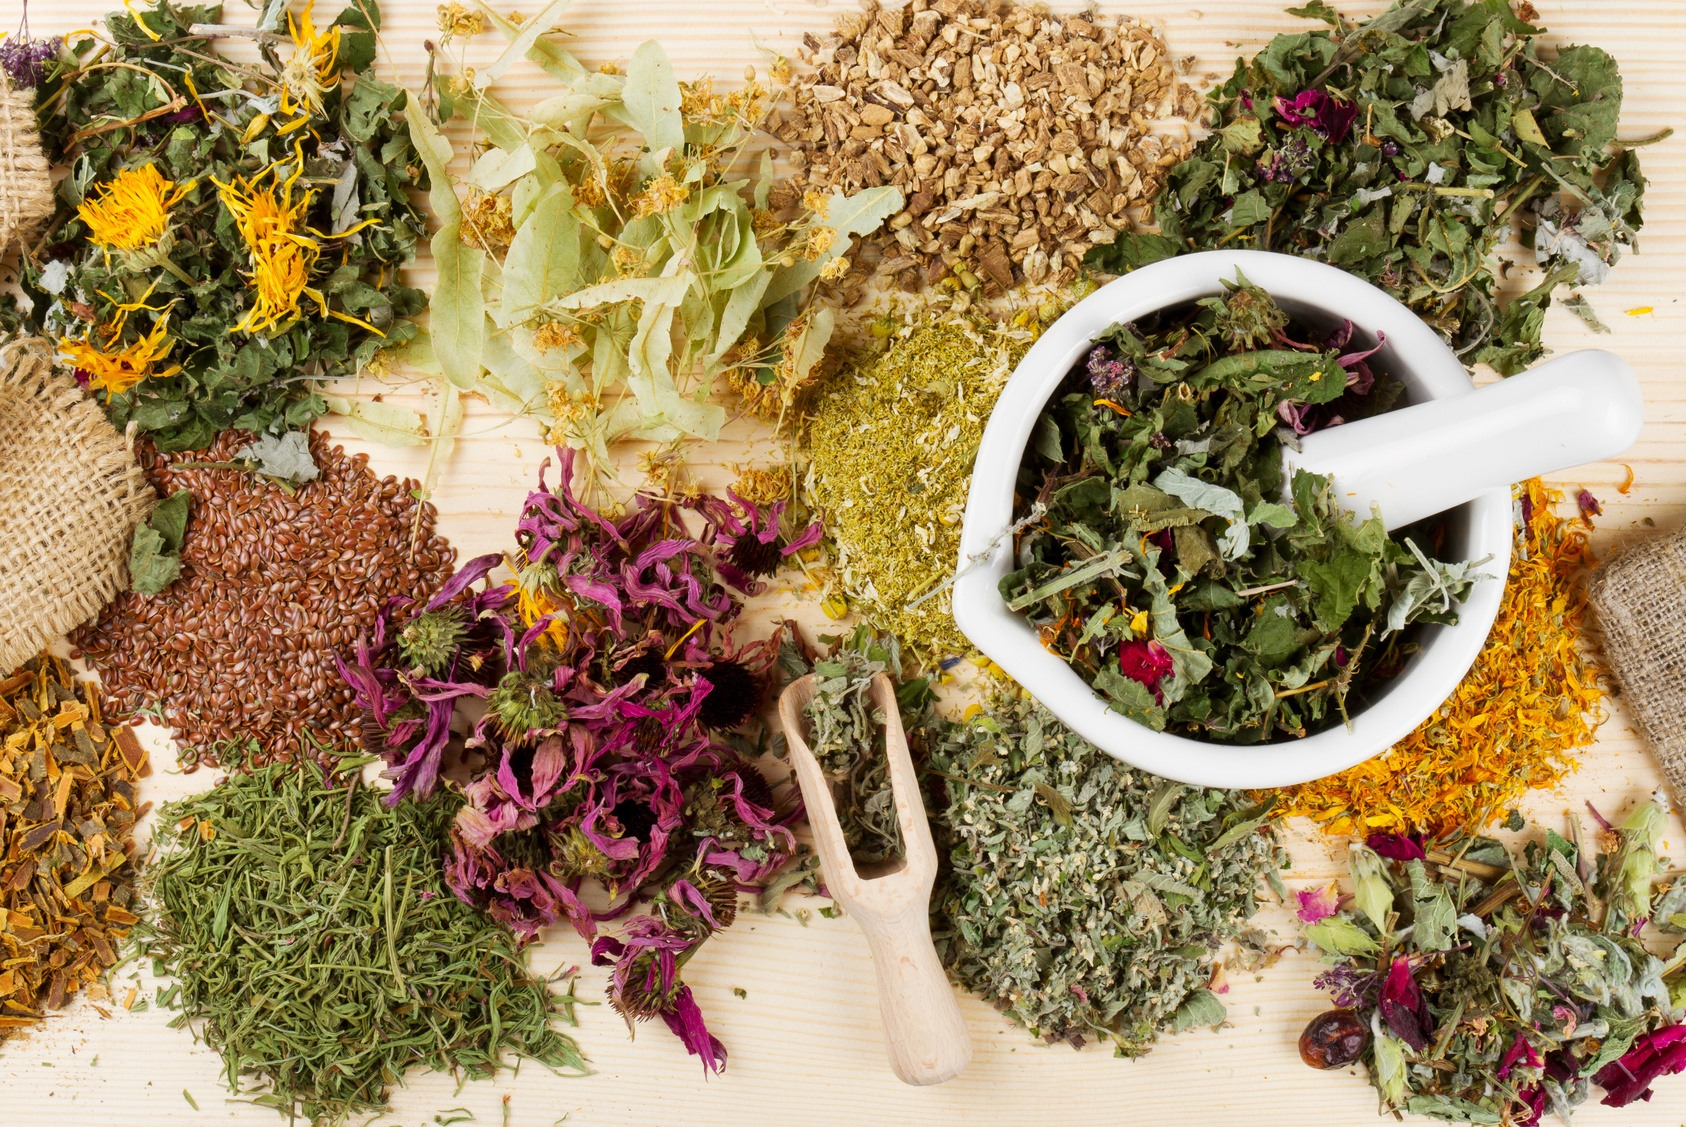 Herbal medicines of cancer zodiac